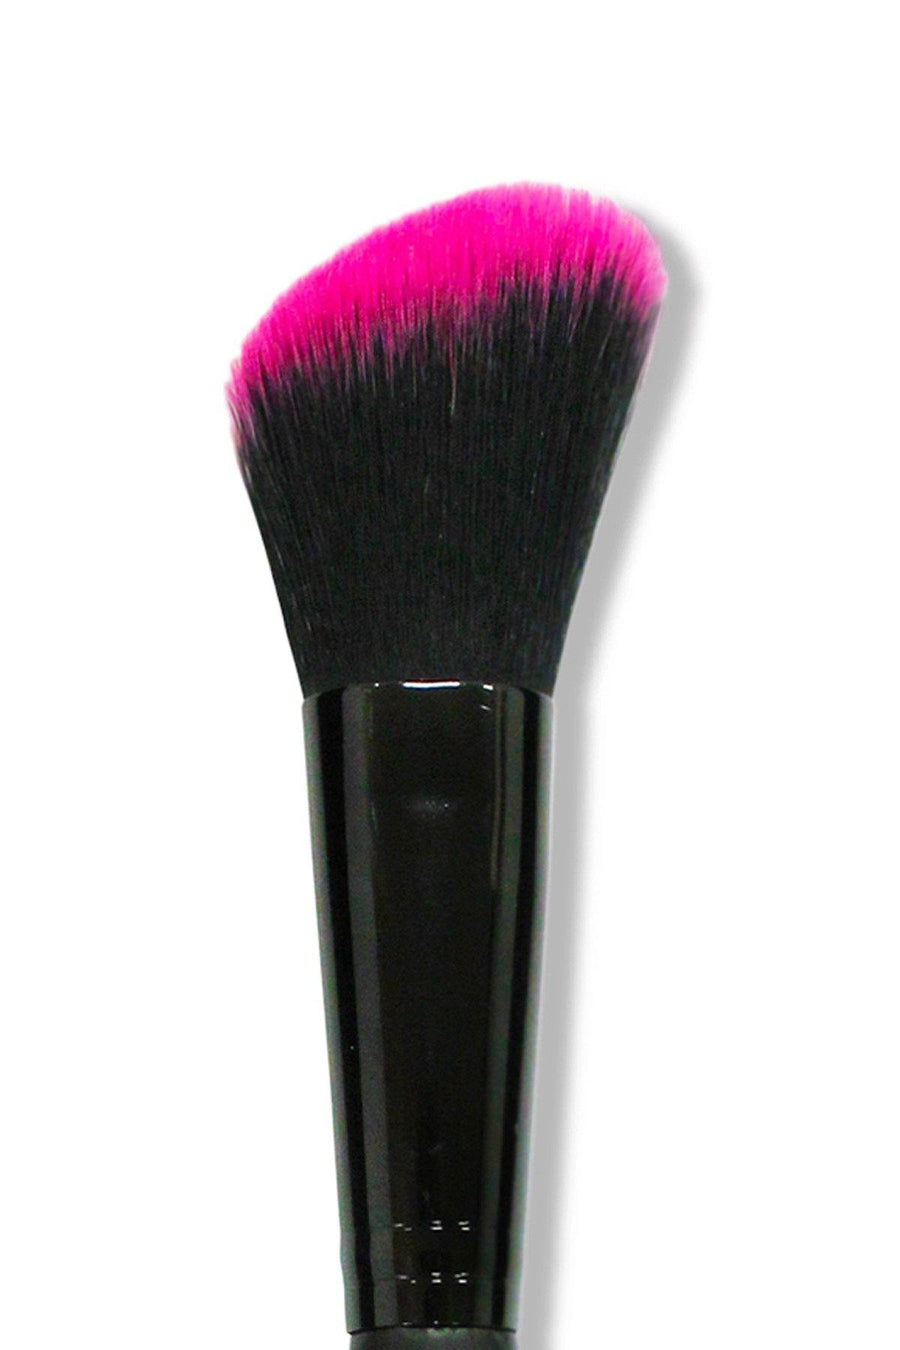 Blush Brush - Pink - Blend Mineral Cosmetics